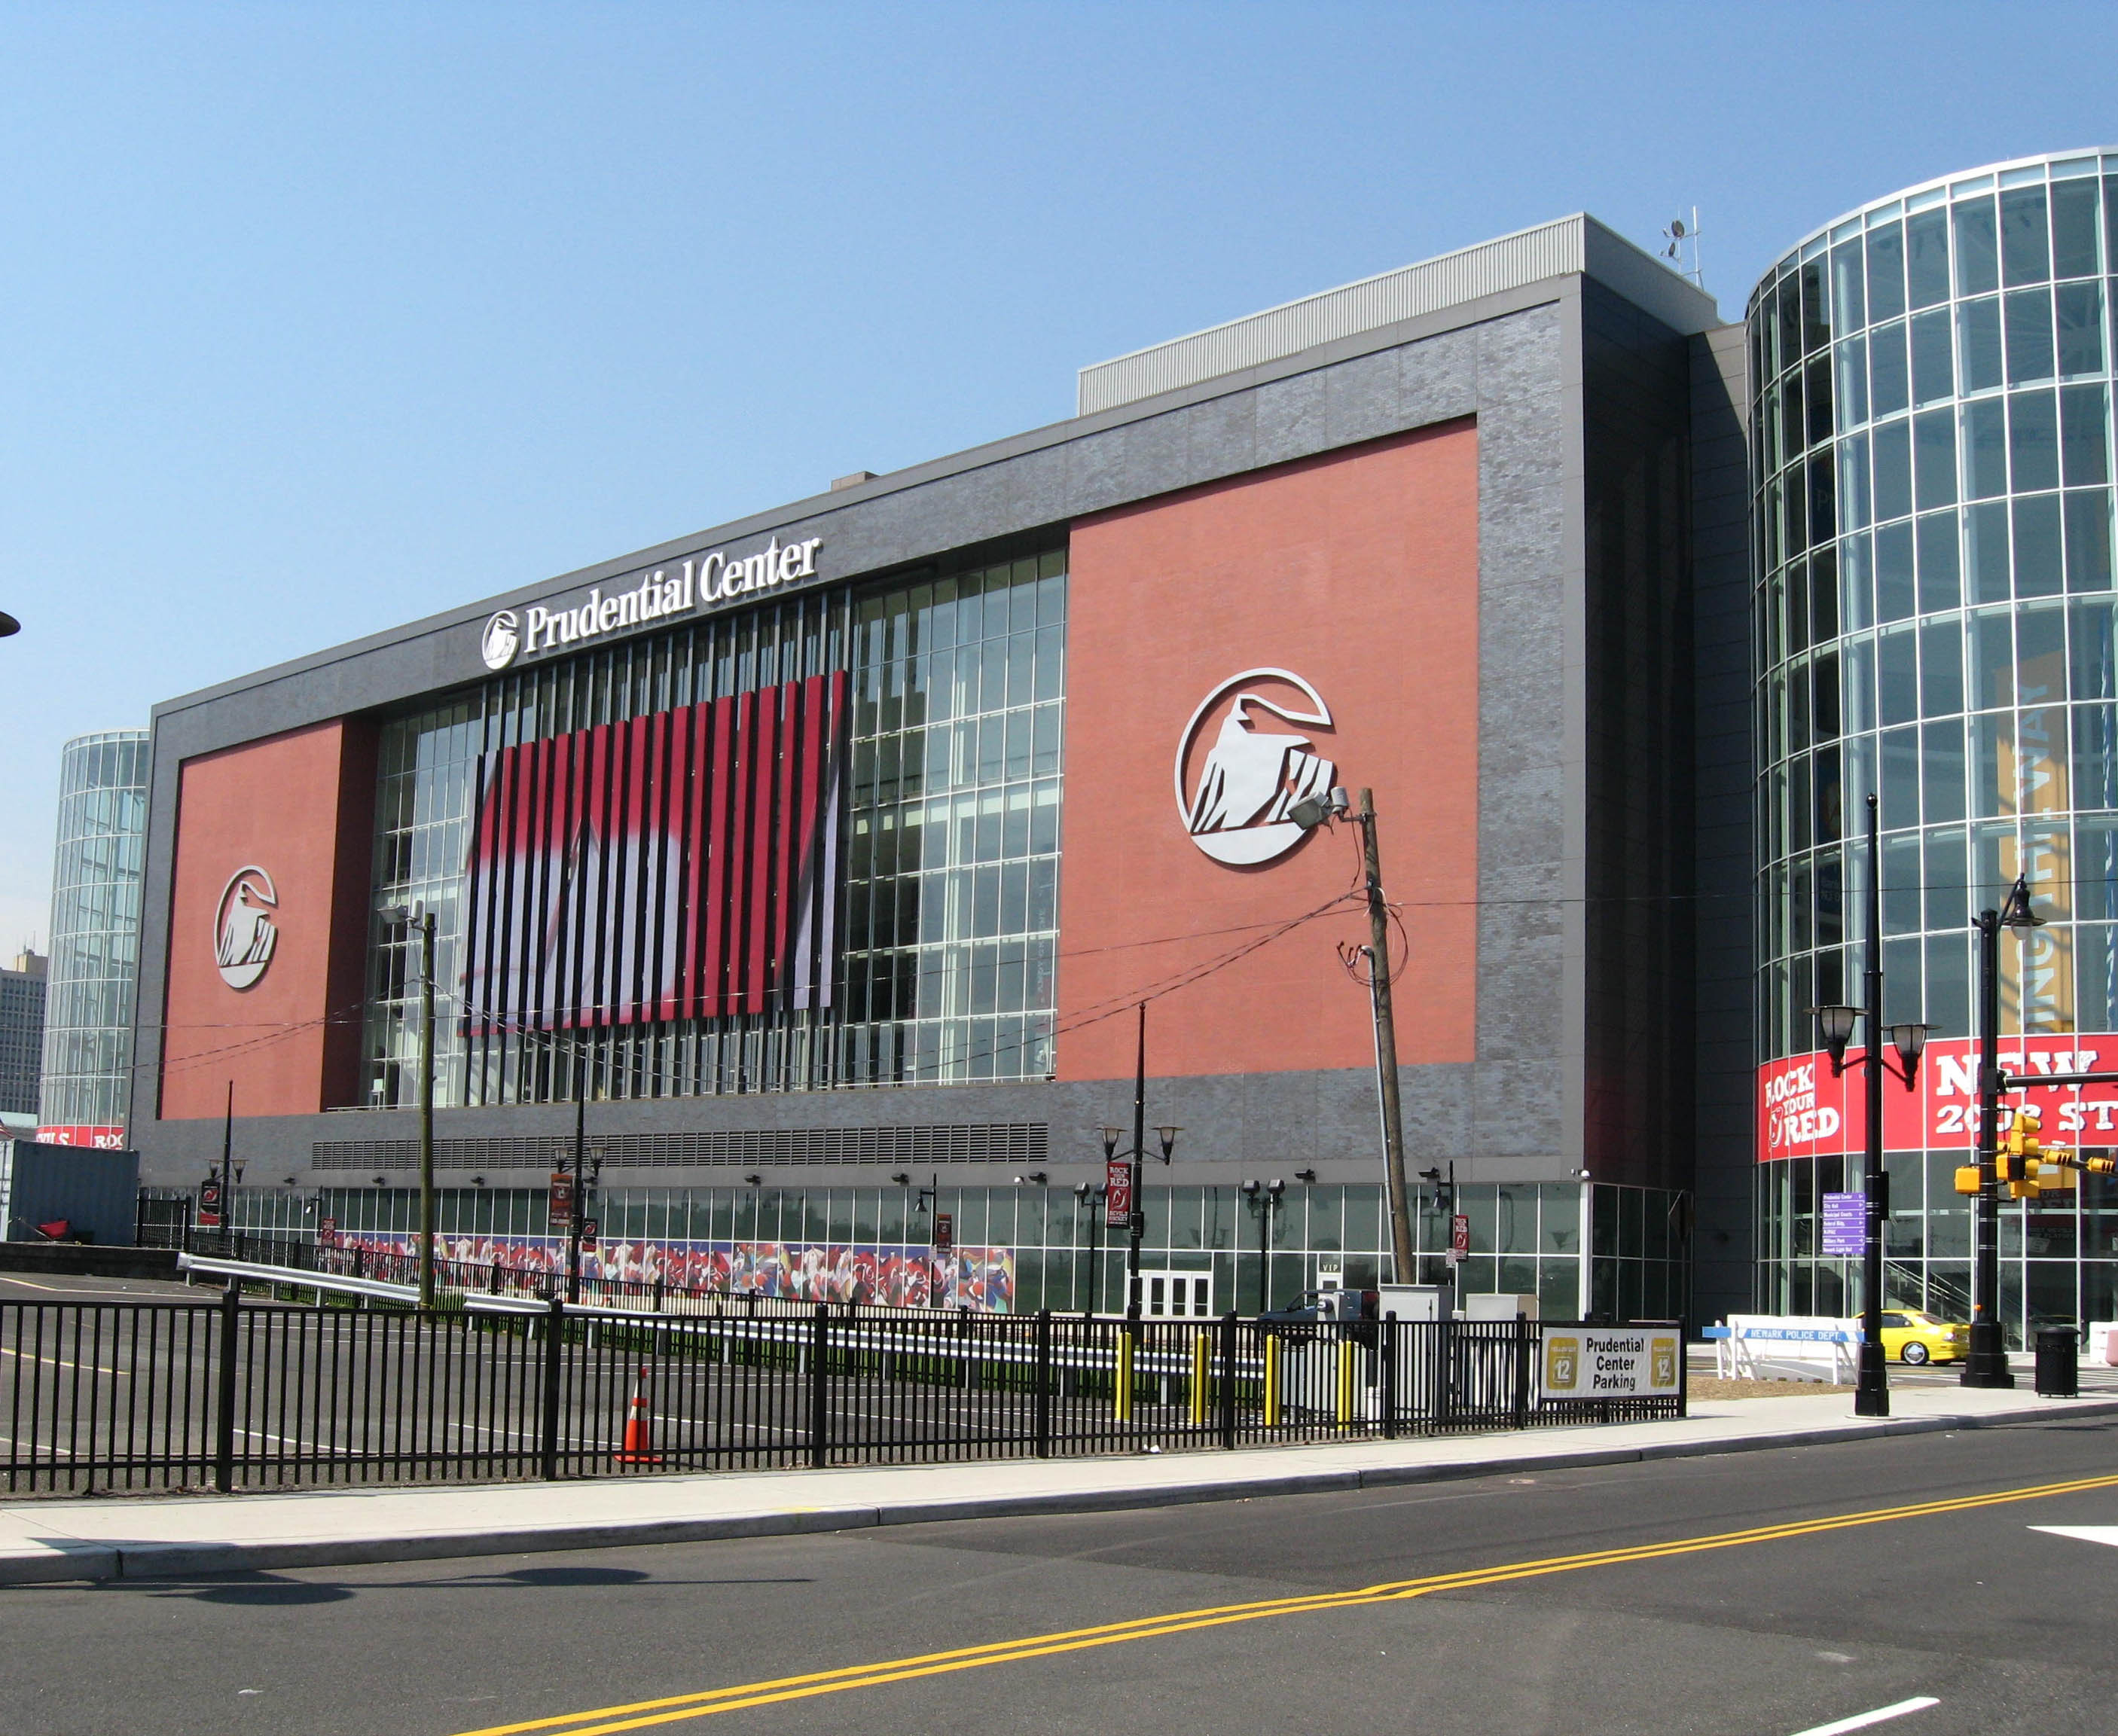 Prudential Center in Newark, home of the NHL's New Jersey Devils and NBA's New Jersey Nets.